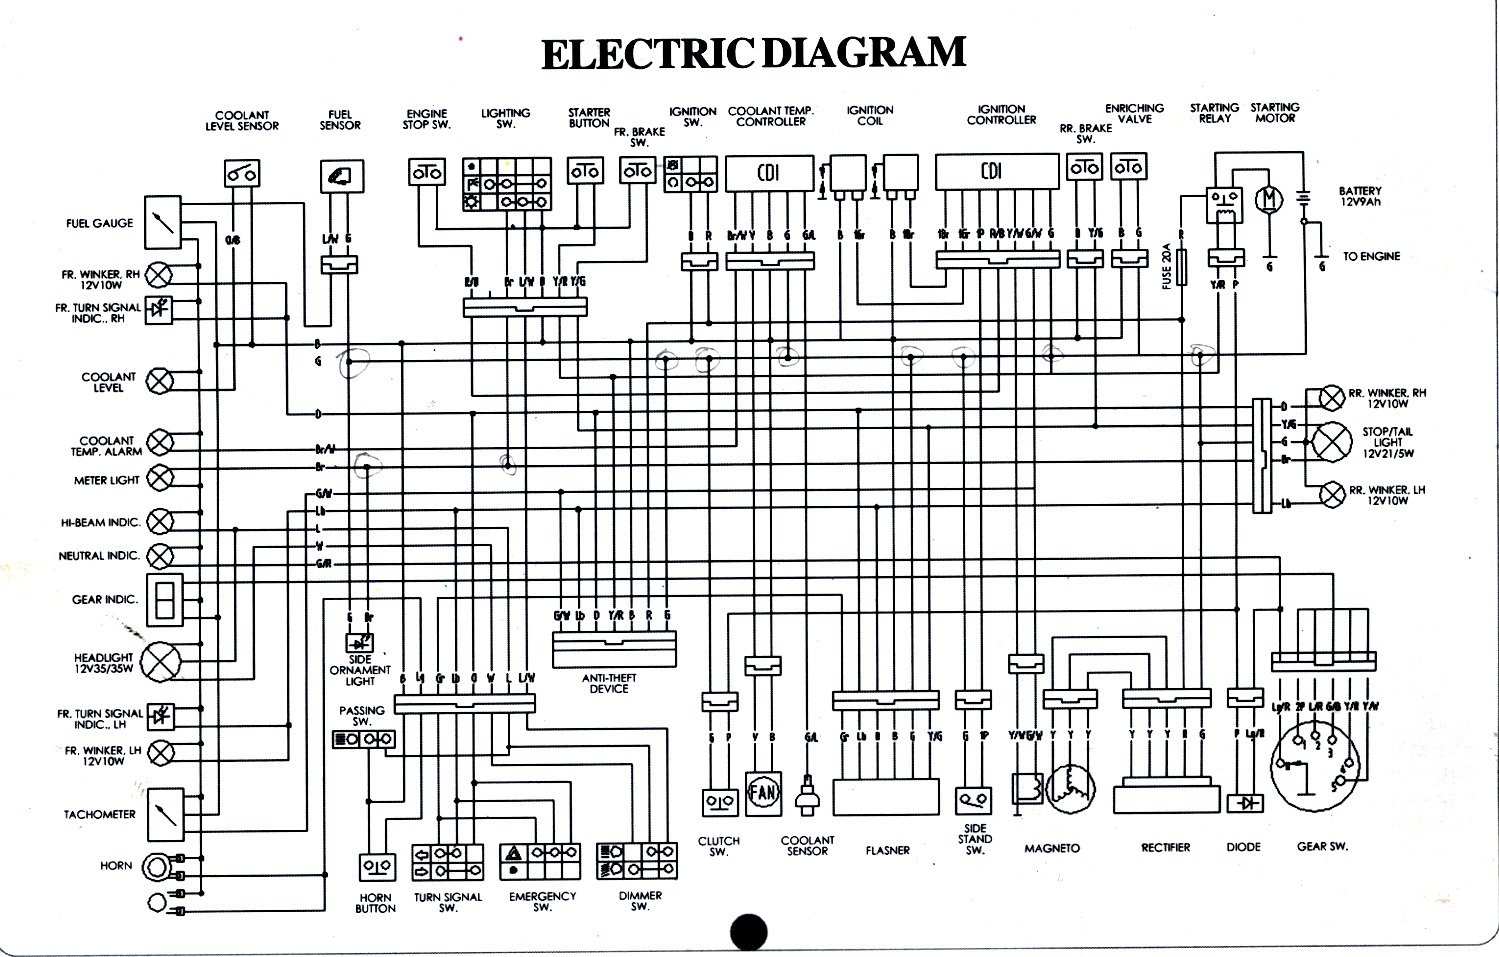 2008 11 12_184605_Electric_Diagram_Bike polaris phoenix 200 wiring diagram ground yamaha raptor 350 yamaha raptor 350 wiring diagram at mr168.co